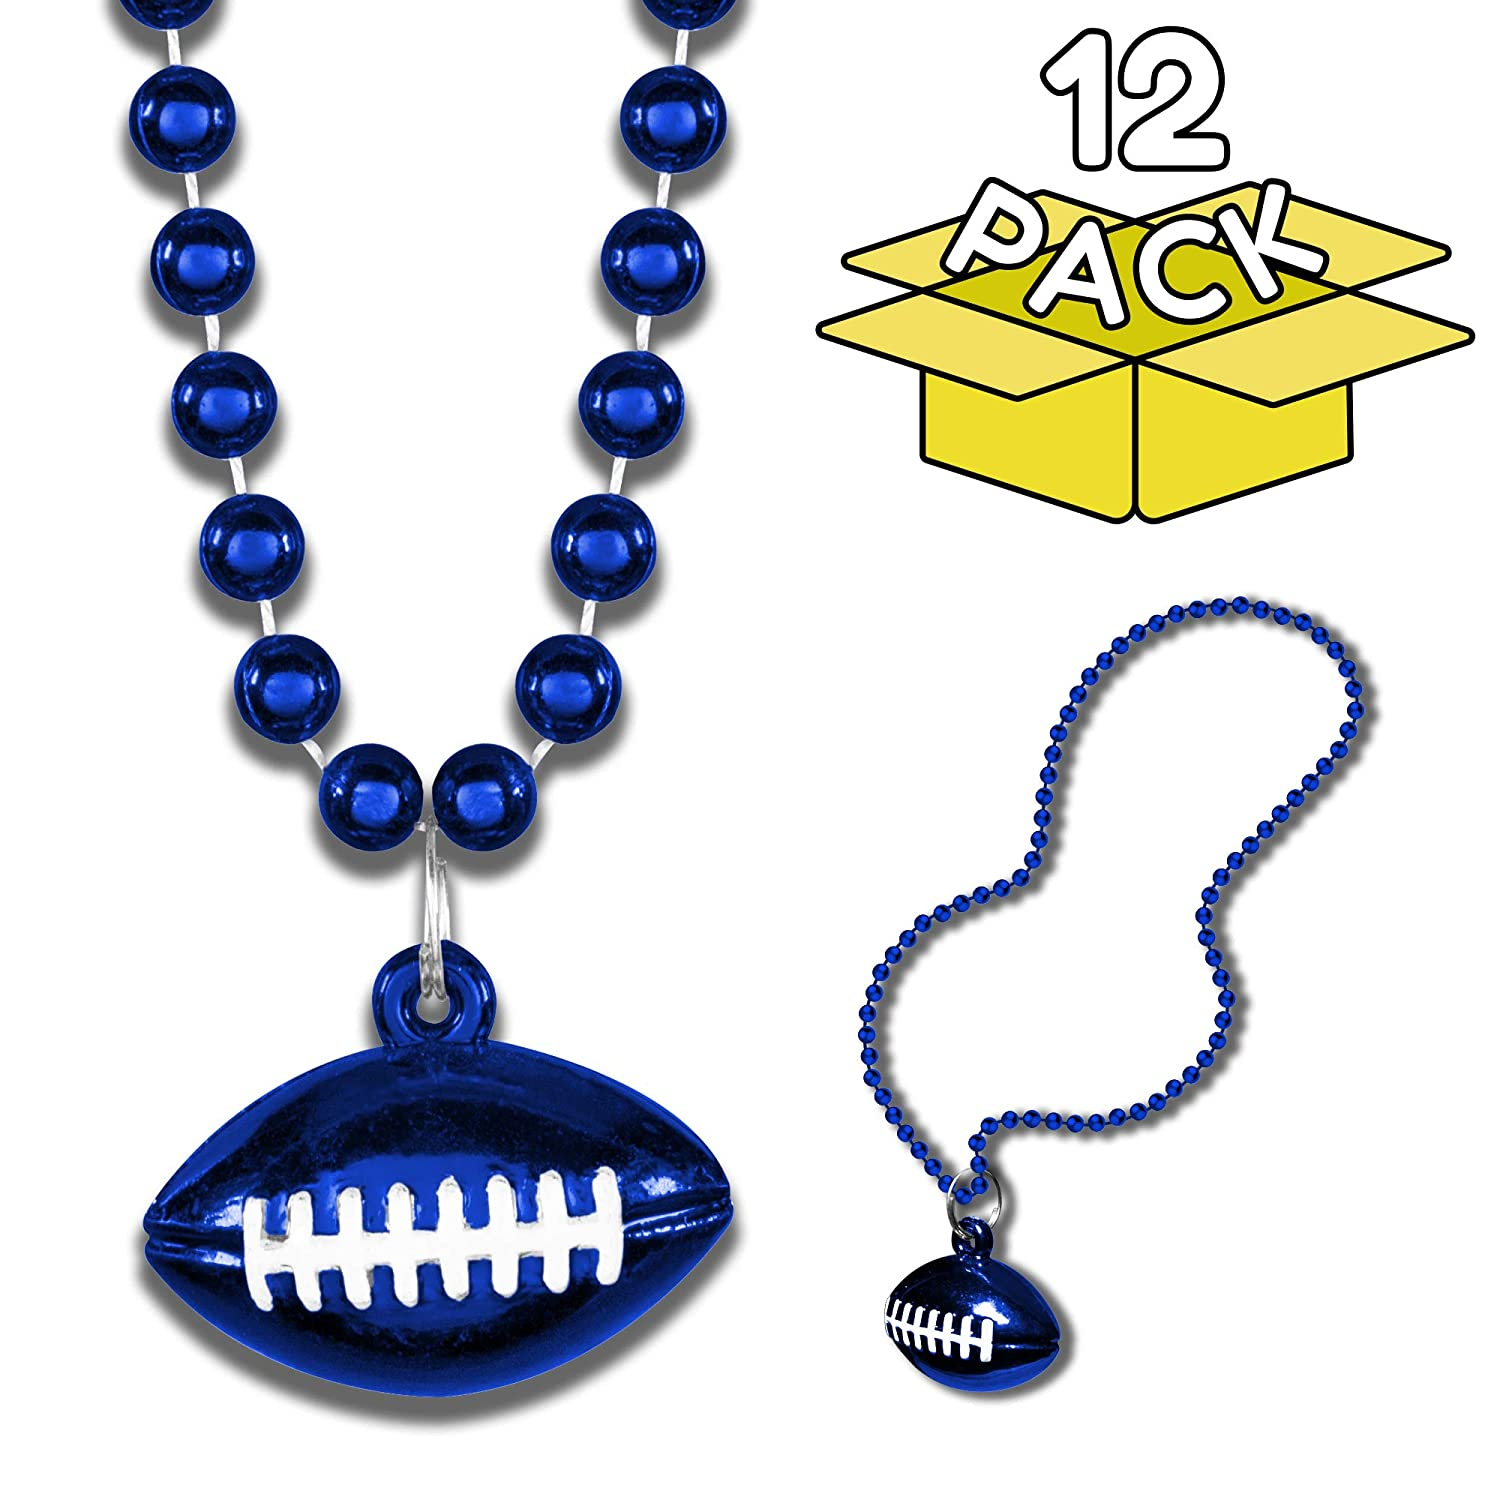 Windy City Novelties 12 Pack Football Party Favors Bead Necklaces